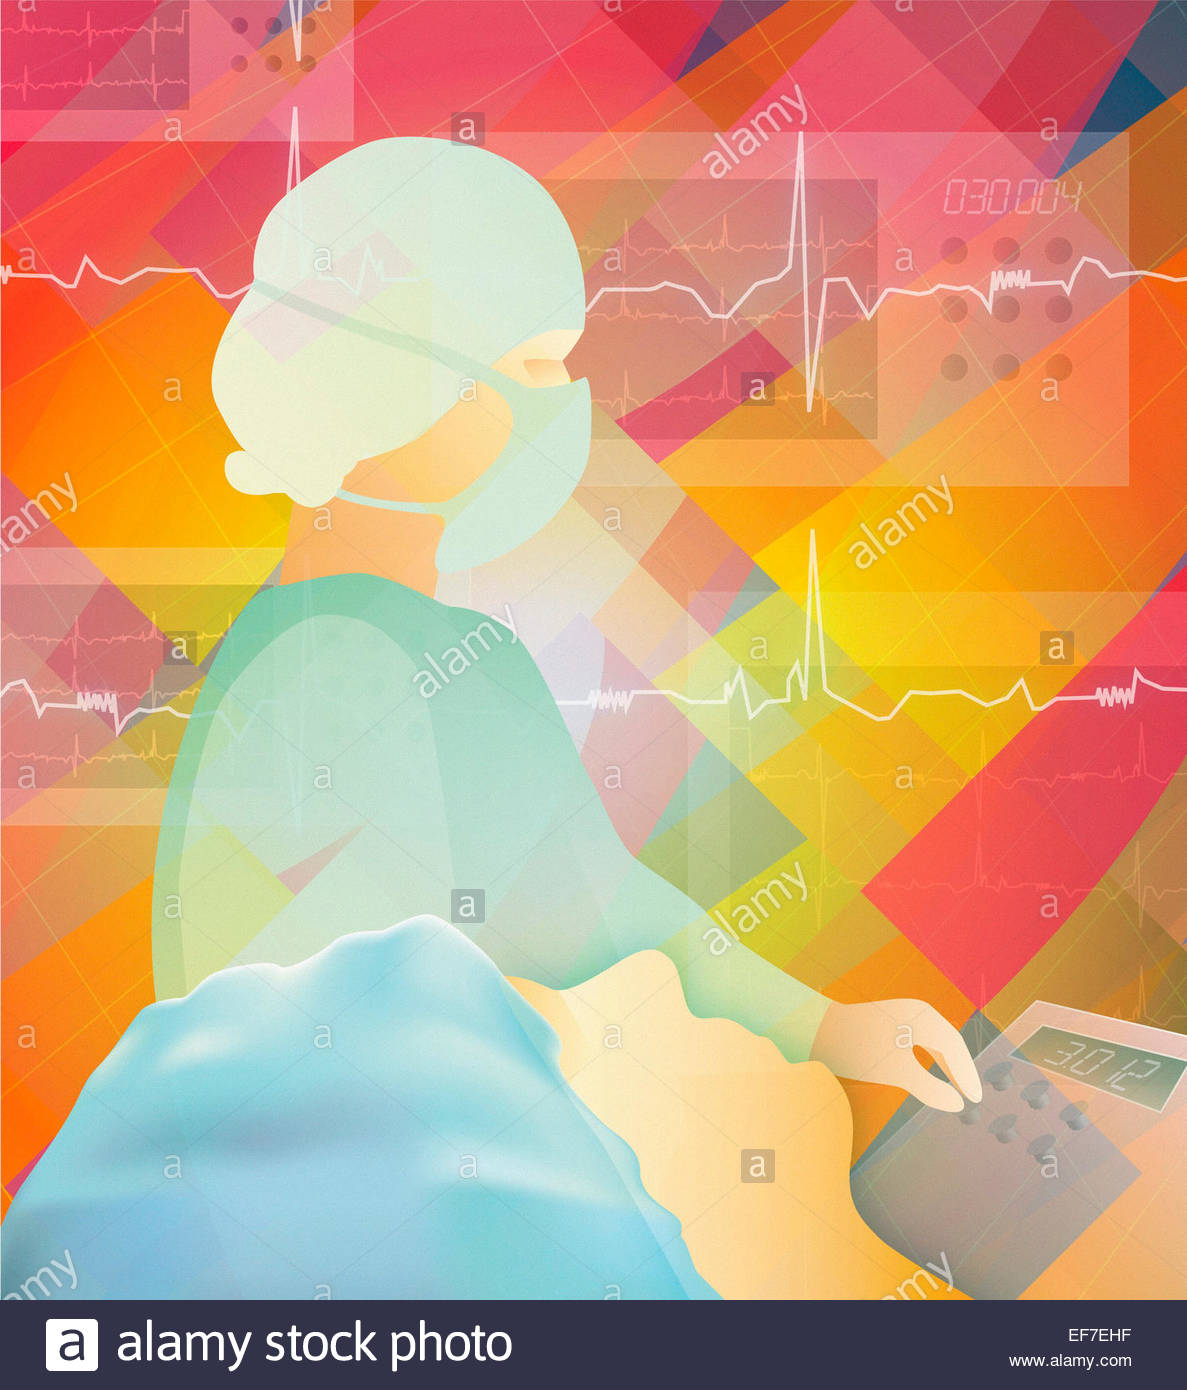 Surgeon monitoring medical equipment results for patient on operating table - Stock Image